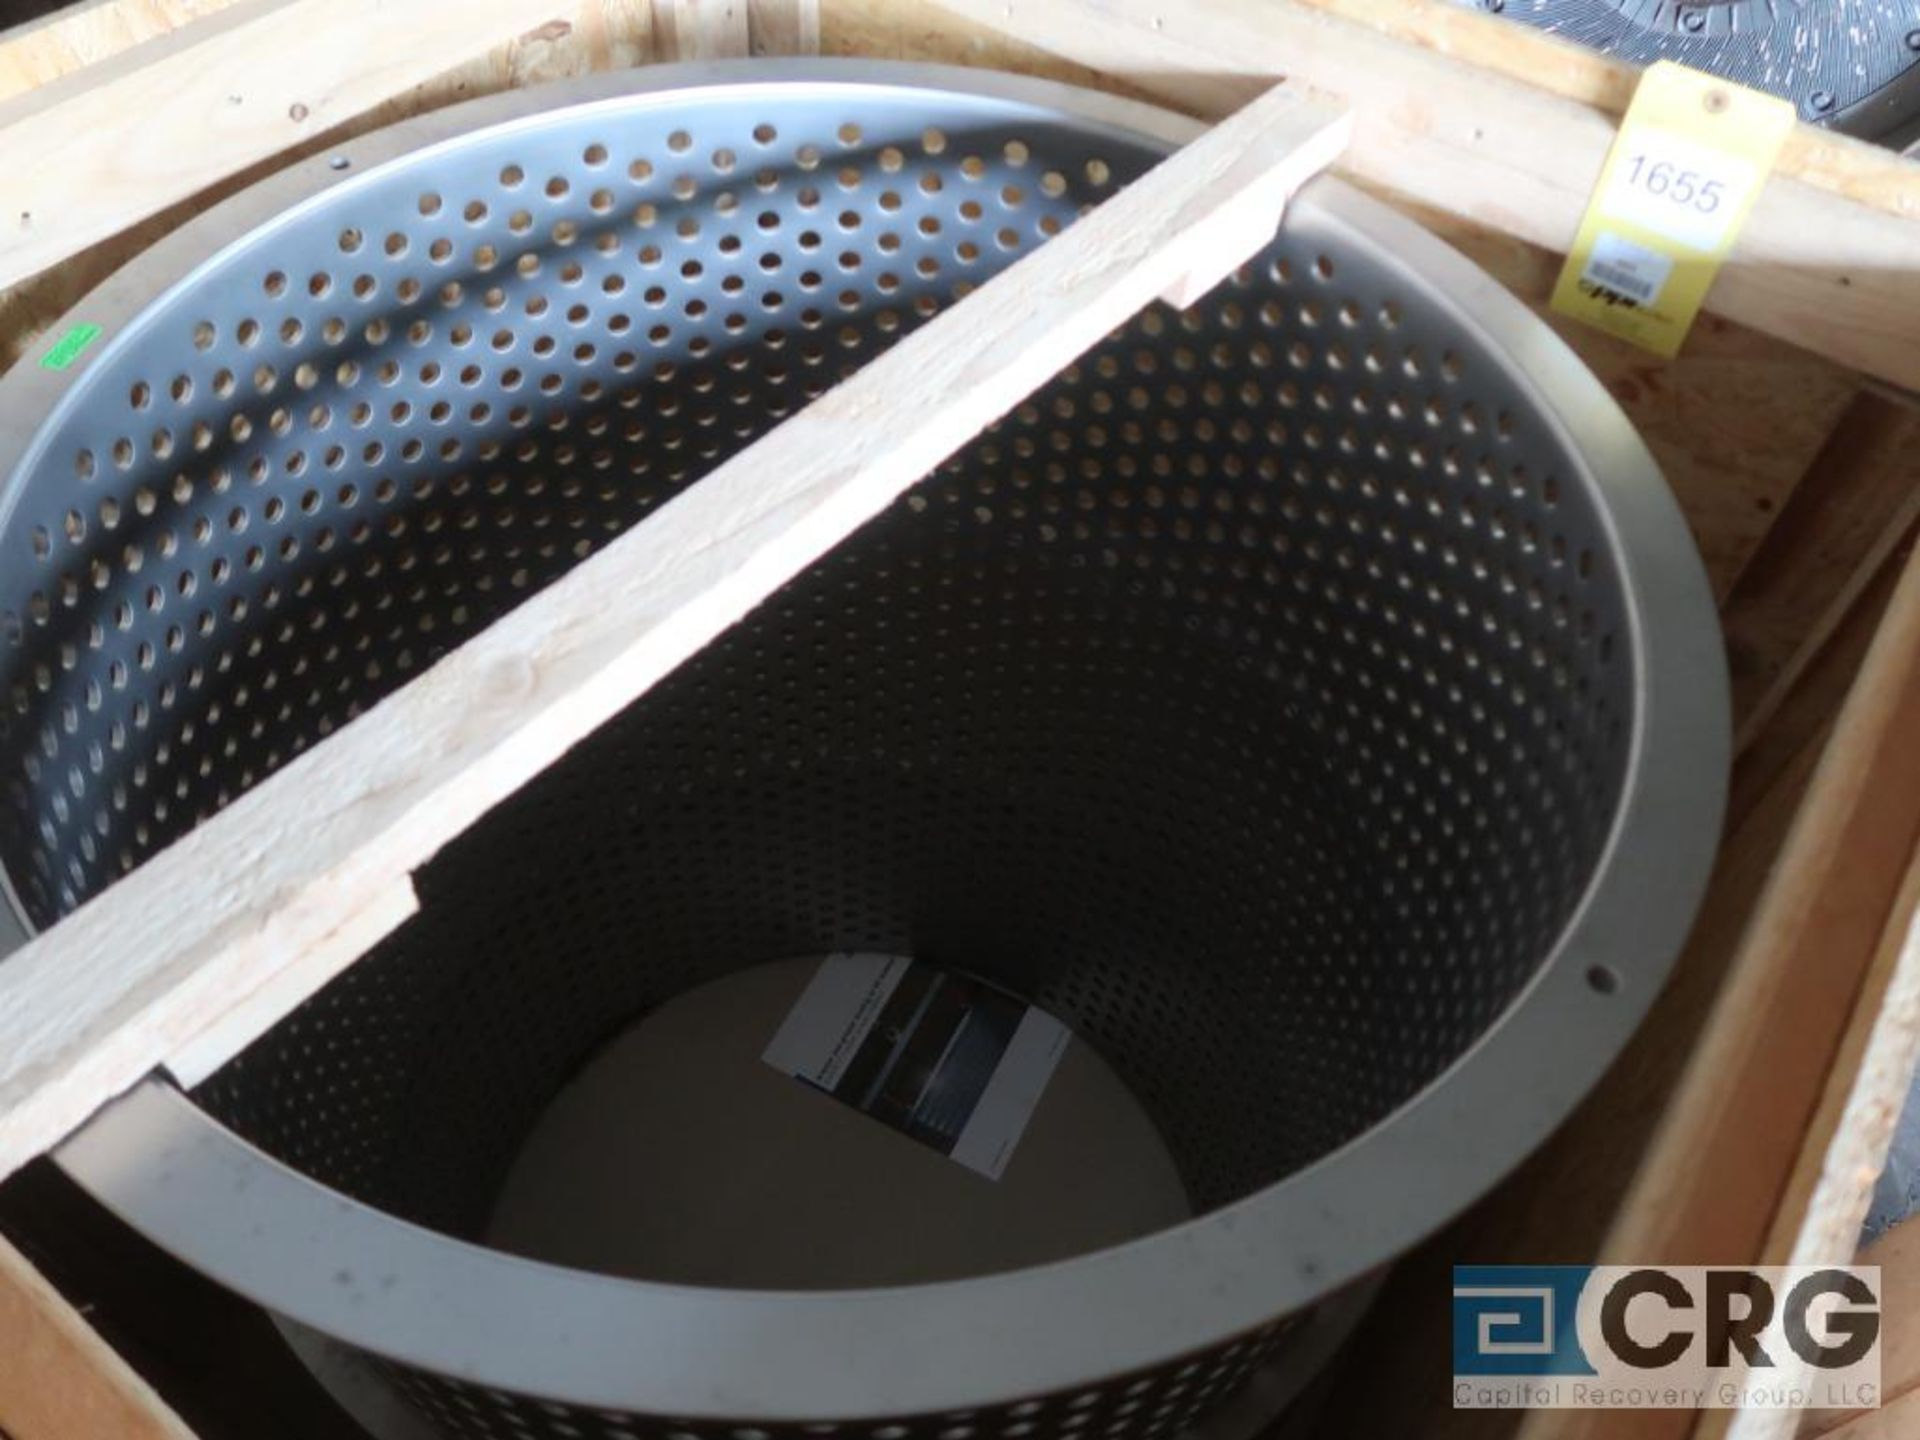 Andritz PSV N400 BW16 stainless basket screen, 42 in. x 32 in. dia., s/n 168972 (Off Site - Image 2 of 3